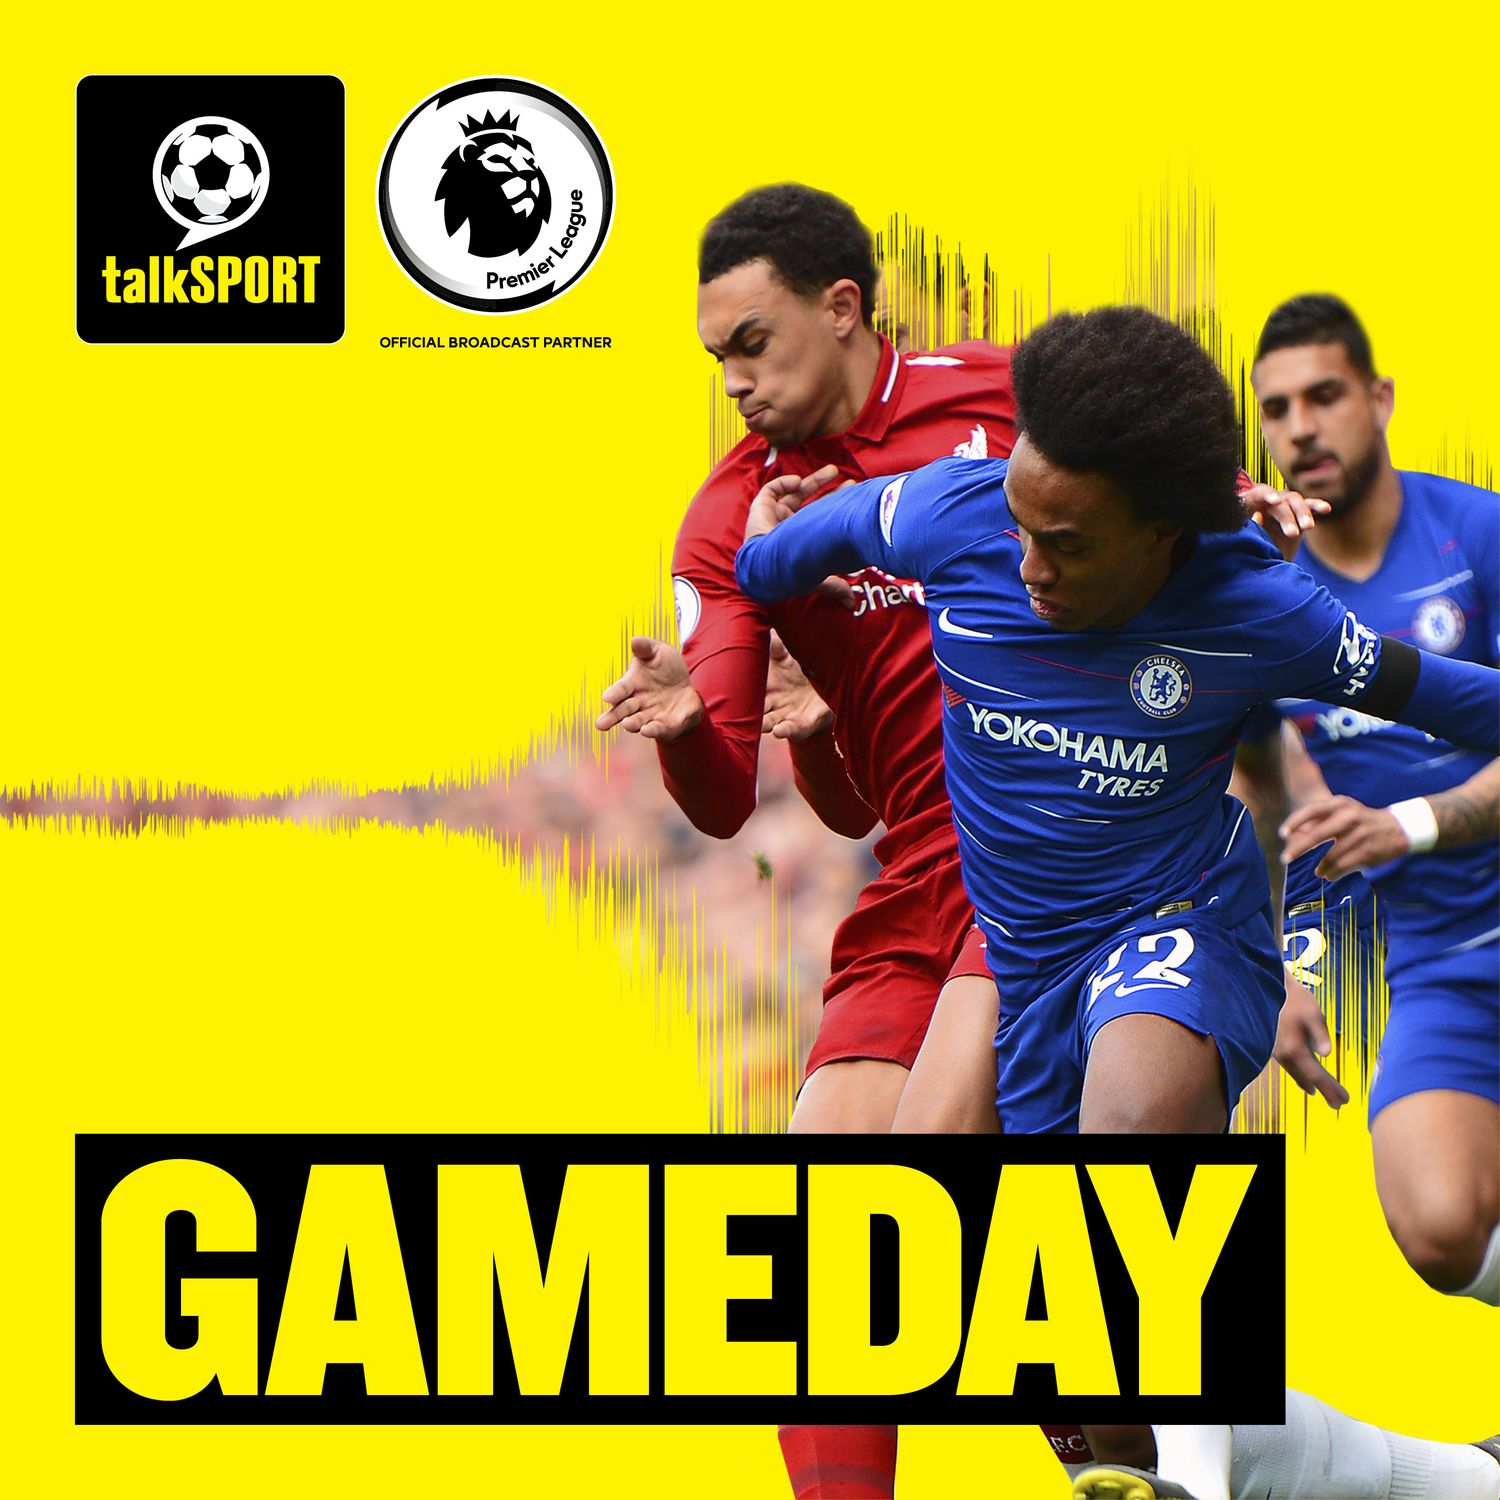 GameDay: Premier League Preview Show GameDay podcast